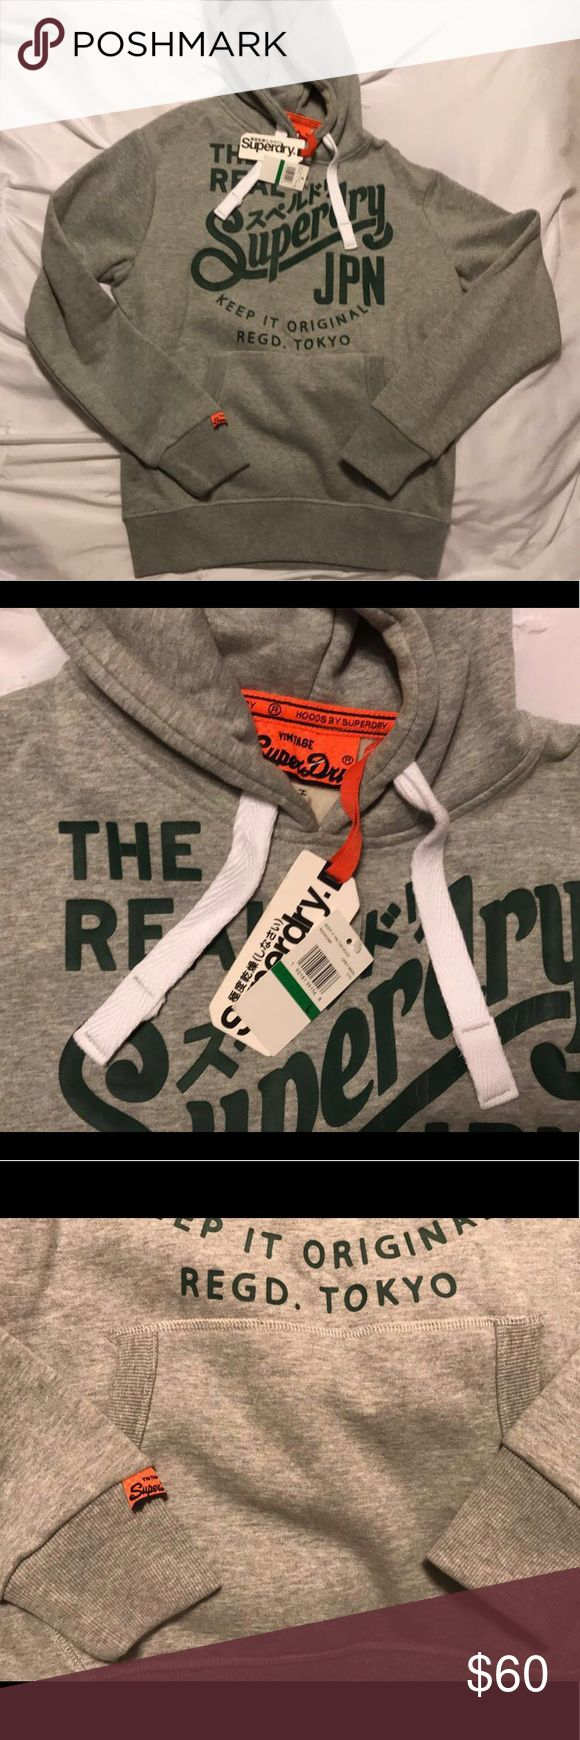 Superdry Hoodie Size Large New with tags some cracking on the font. Size Large Superdry Tops Sweatshirts & Hoodies